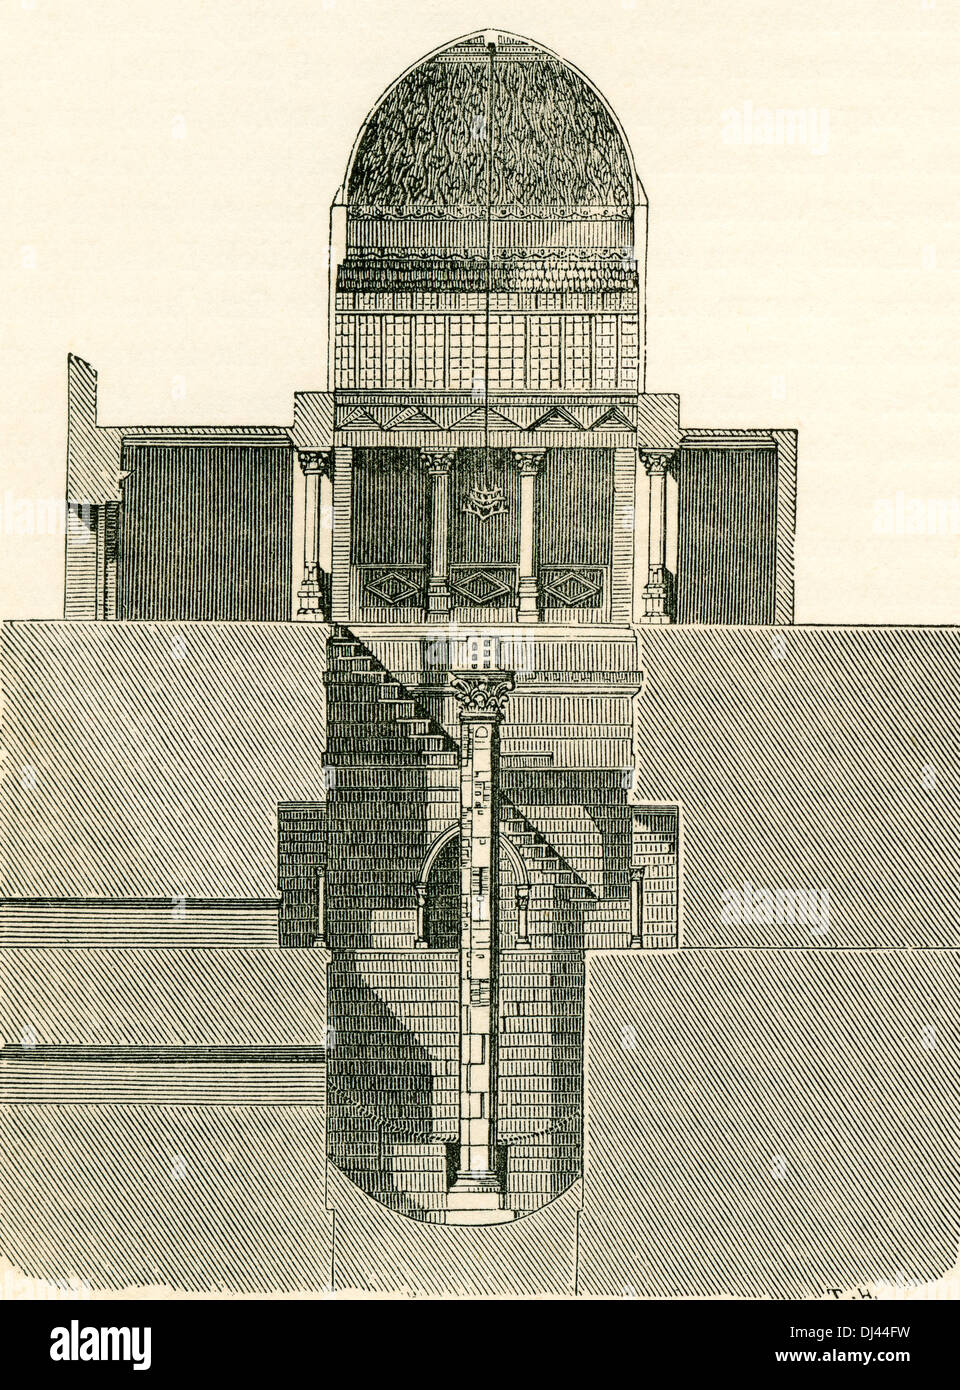 The Nilometer, Island of Rhoda, Egypt in the 19th century.  A Nilometer was a structure for measuring the Nile River's clarity and water level during the annual flood season. - Stock Image